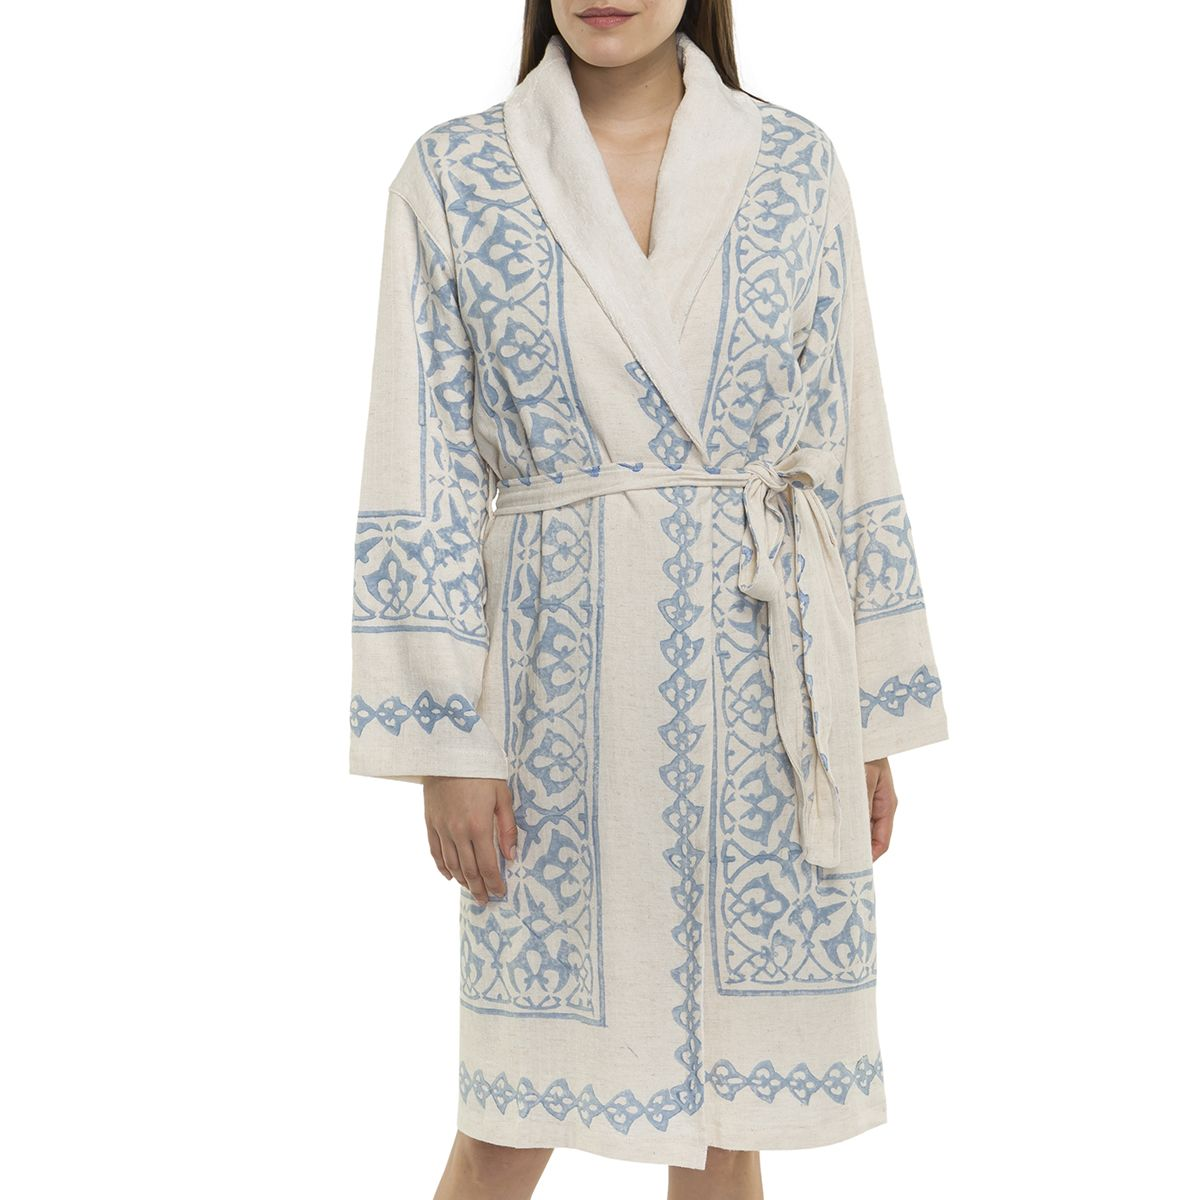 Bathrobe Hand Printed with towel lining 03 - Blue Print